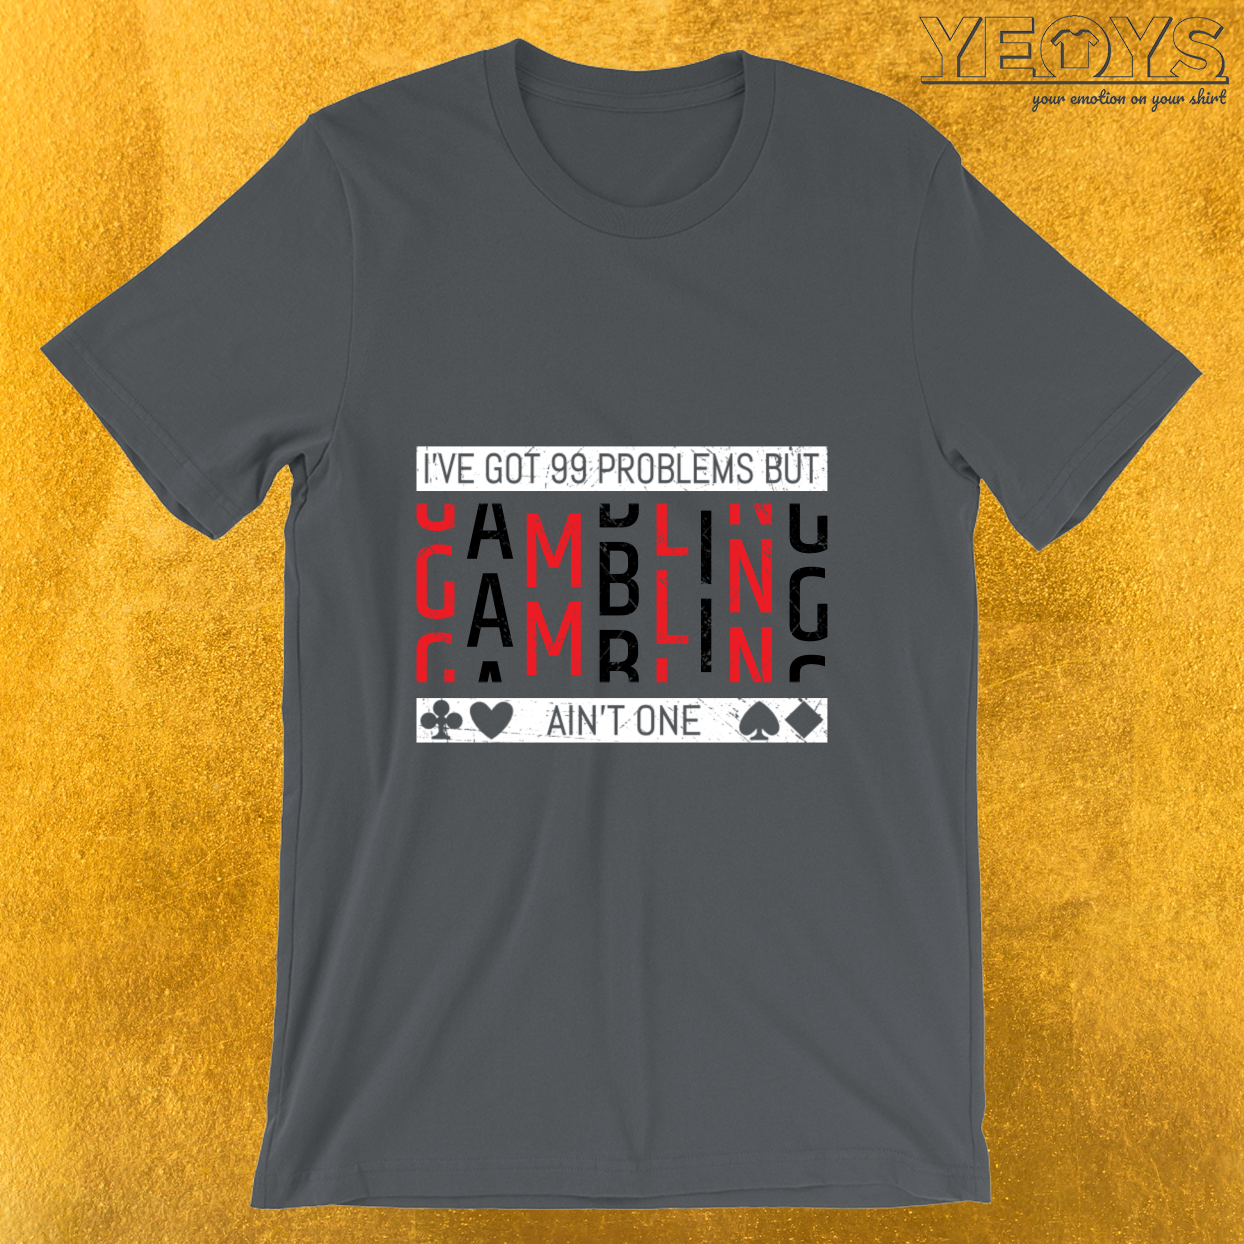 I've Got 99 Problems But Gambling Ain't One – Gambling Problem Tee